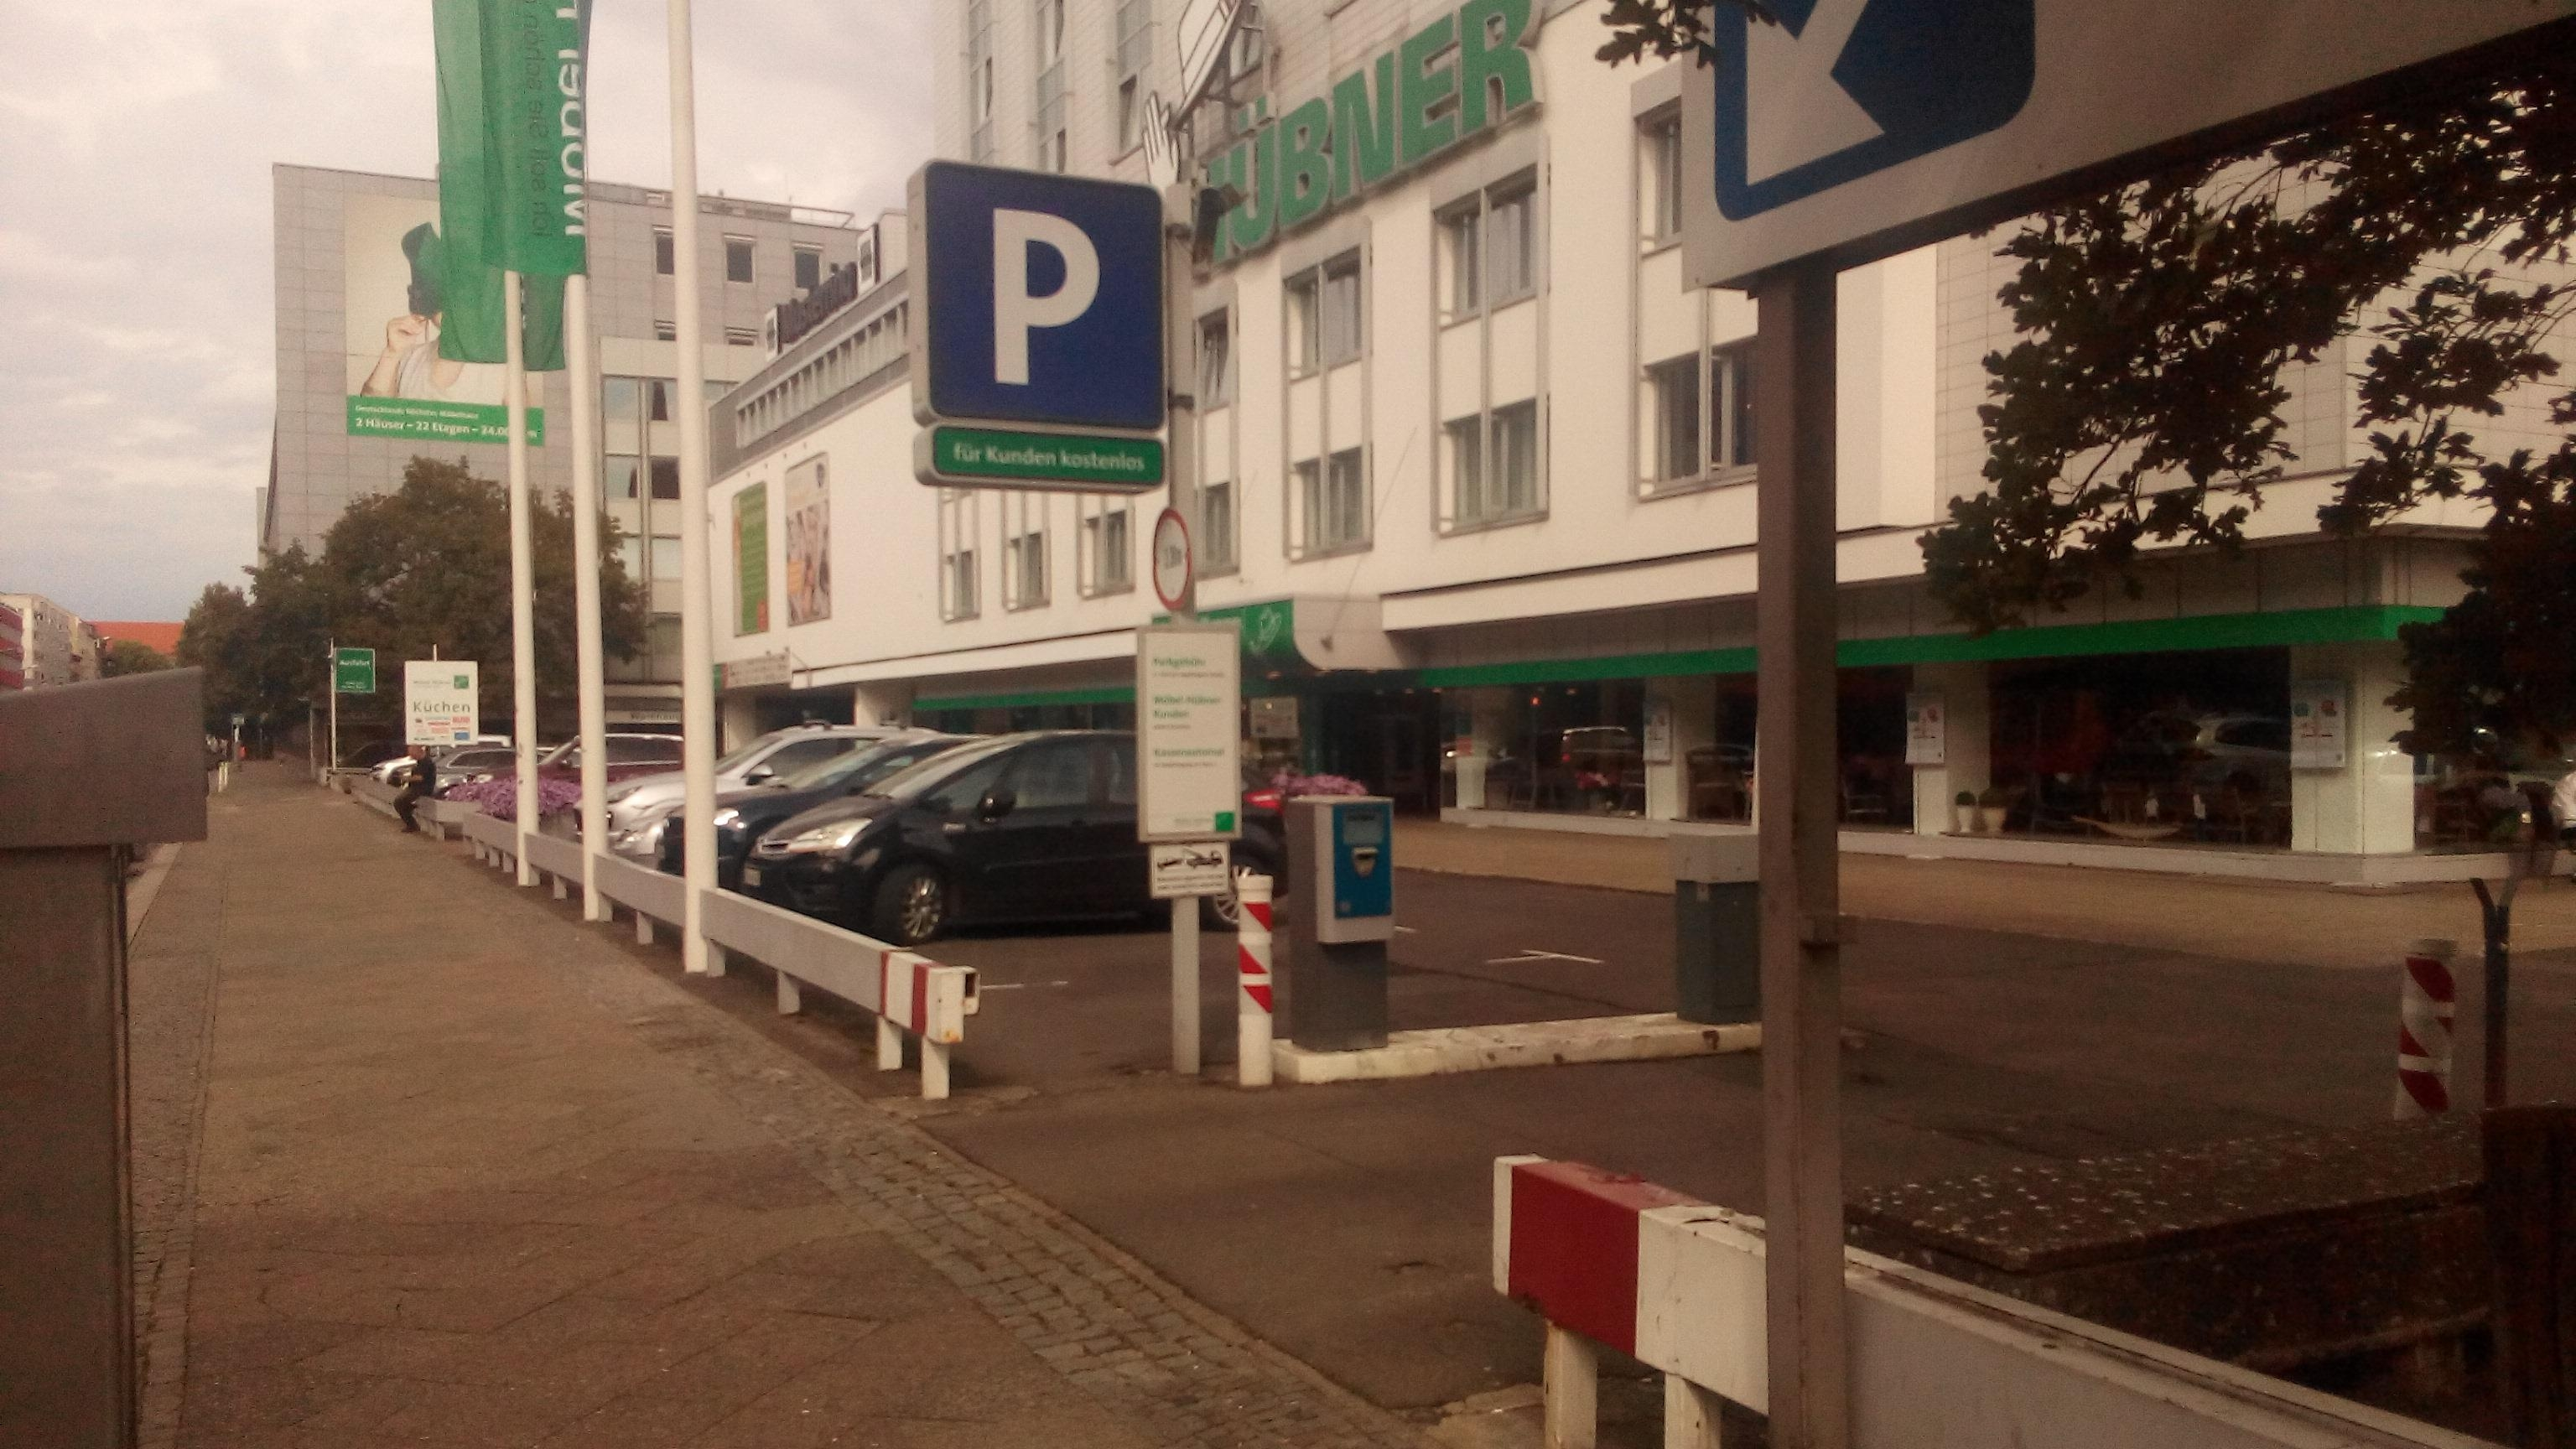 M bel h bner parking in berlin parkme for Mobel berlin